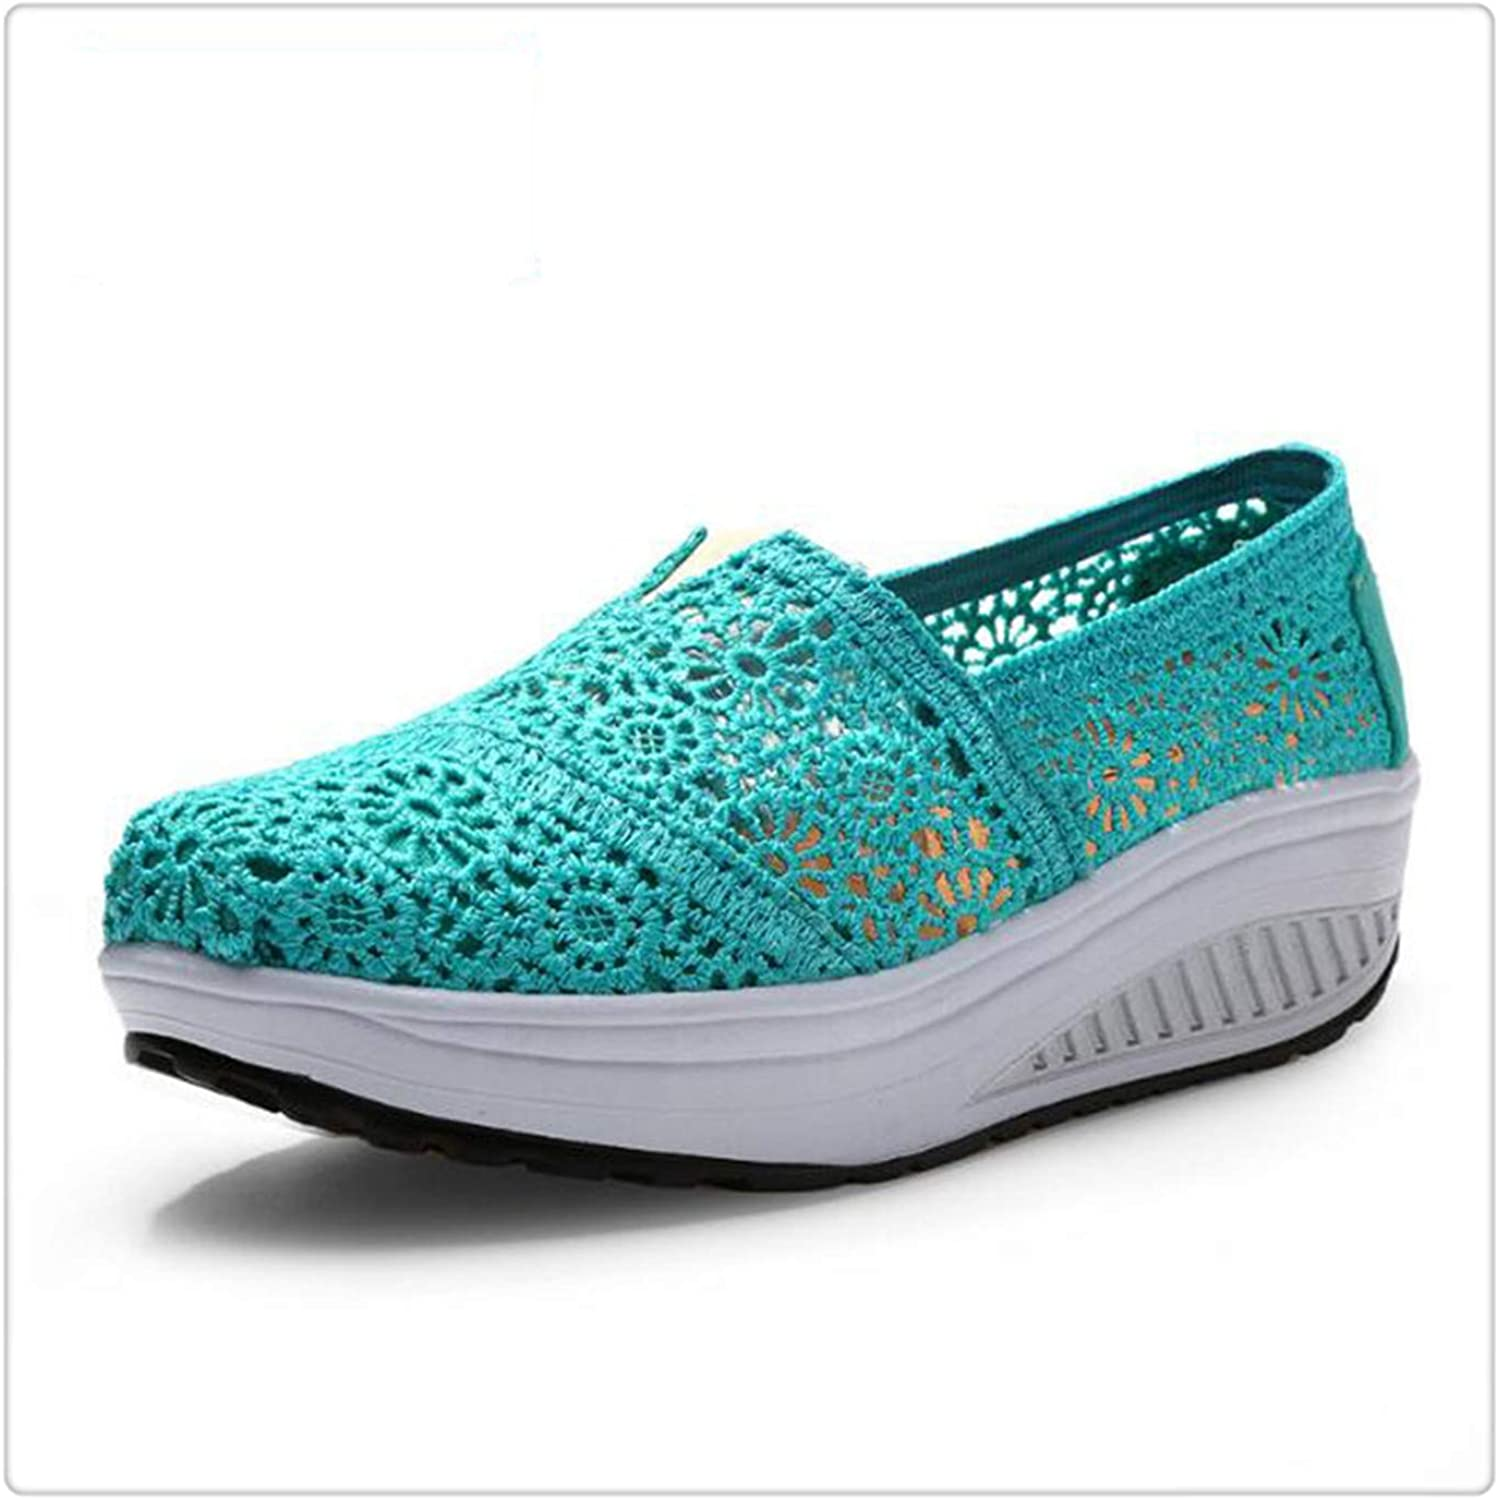 HANGGE& Women Casual shoes 2017 Spring Summer Breathable lace Canvas shoes Women Platform Slip-on Solid Wedges shoes Lake bluee 6.5